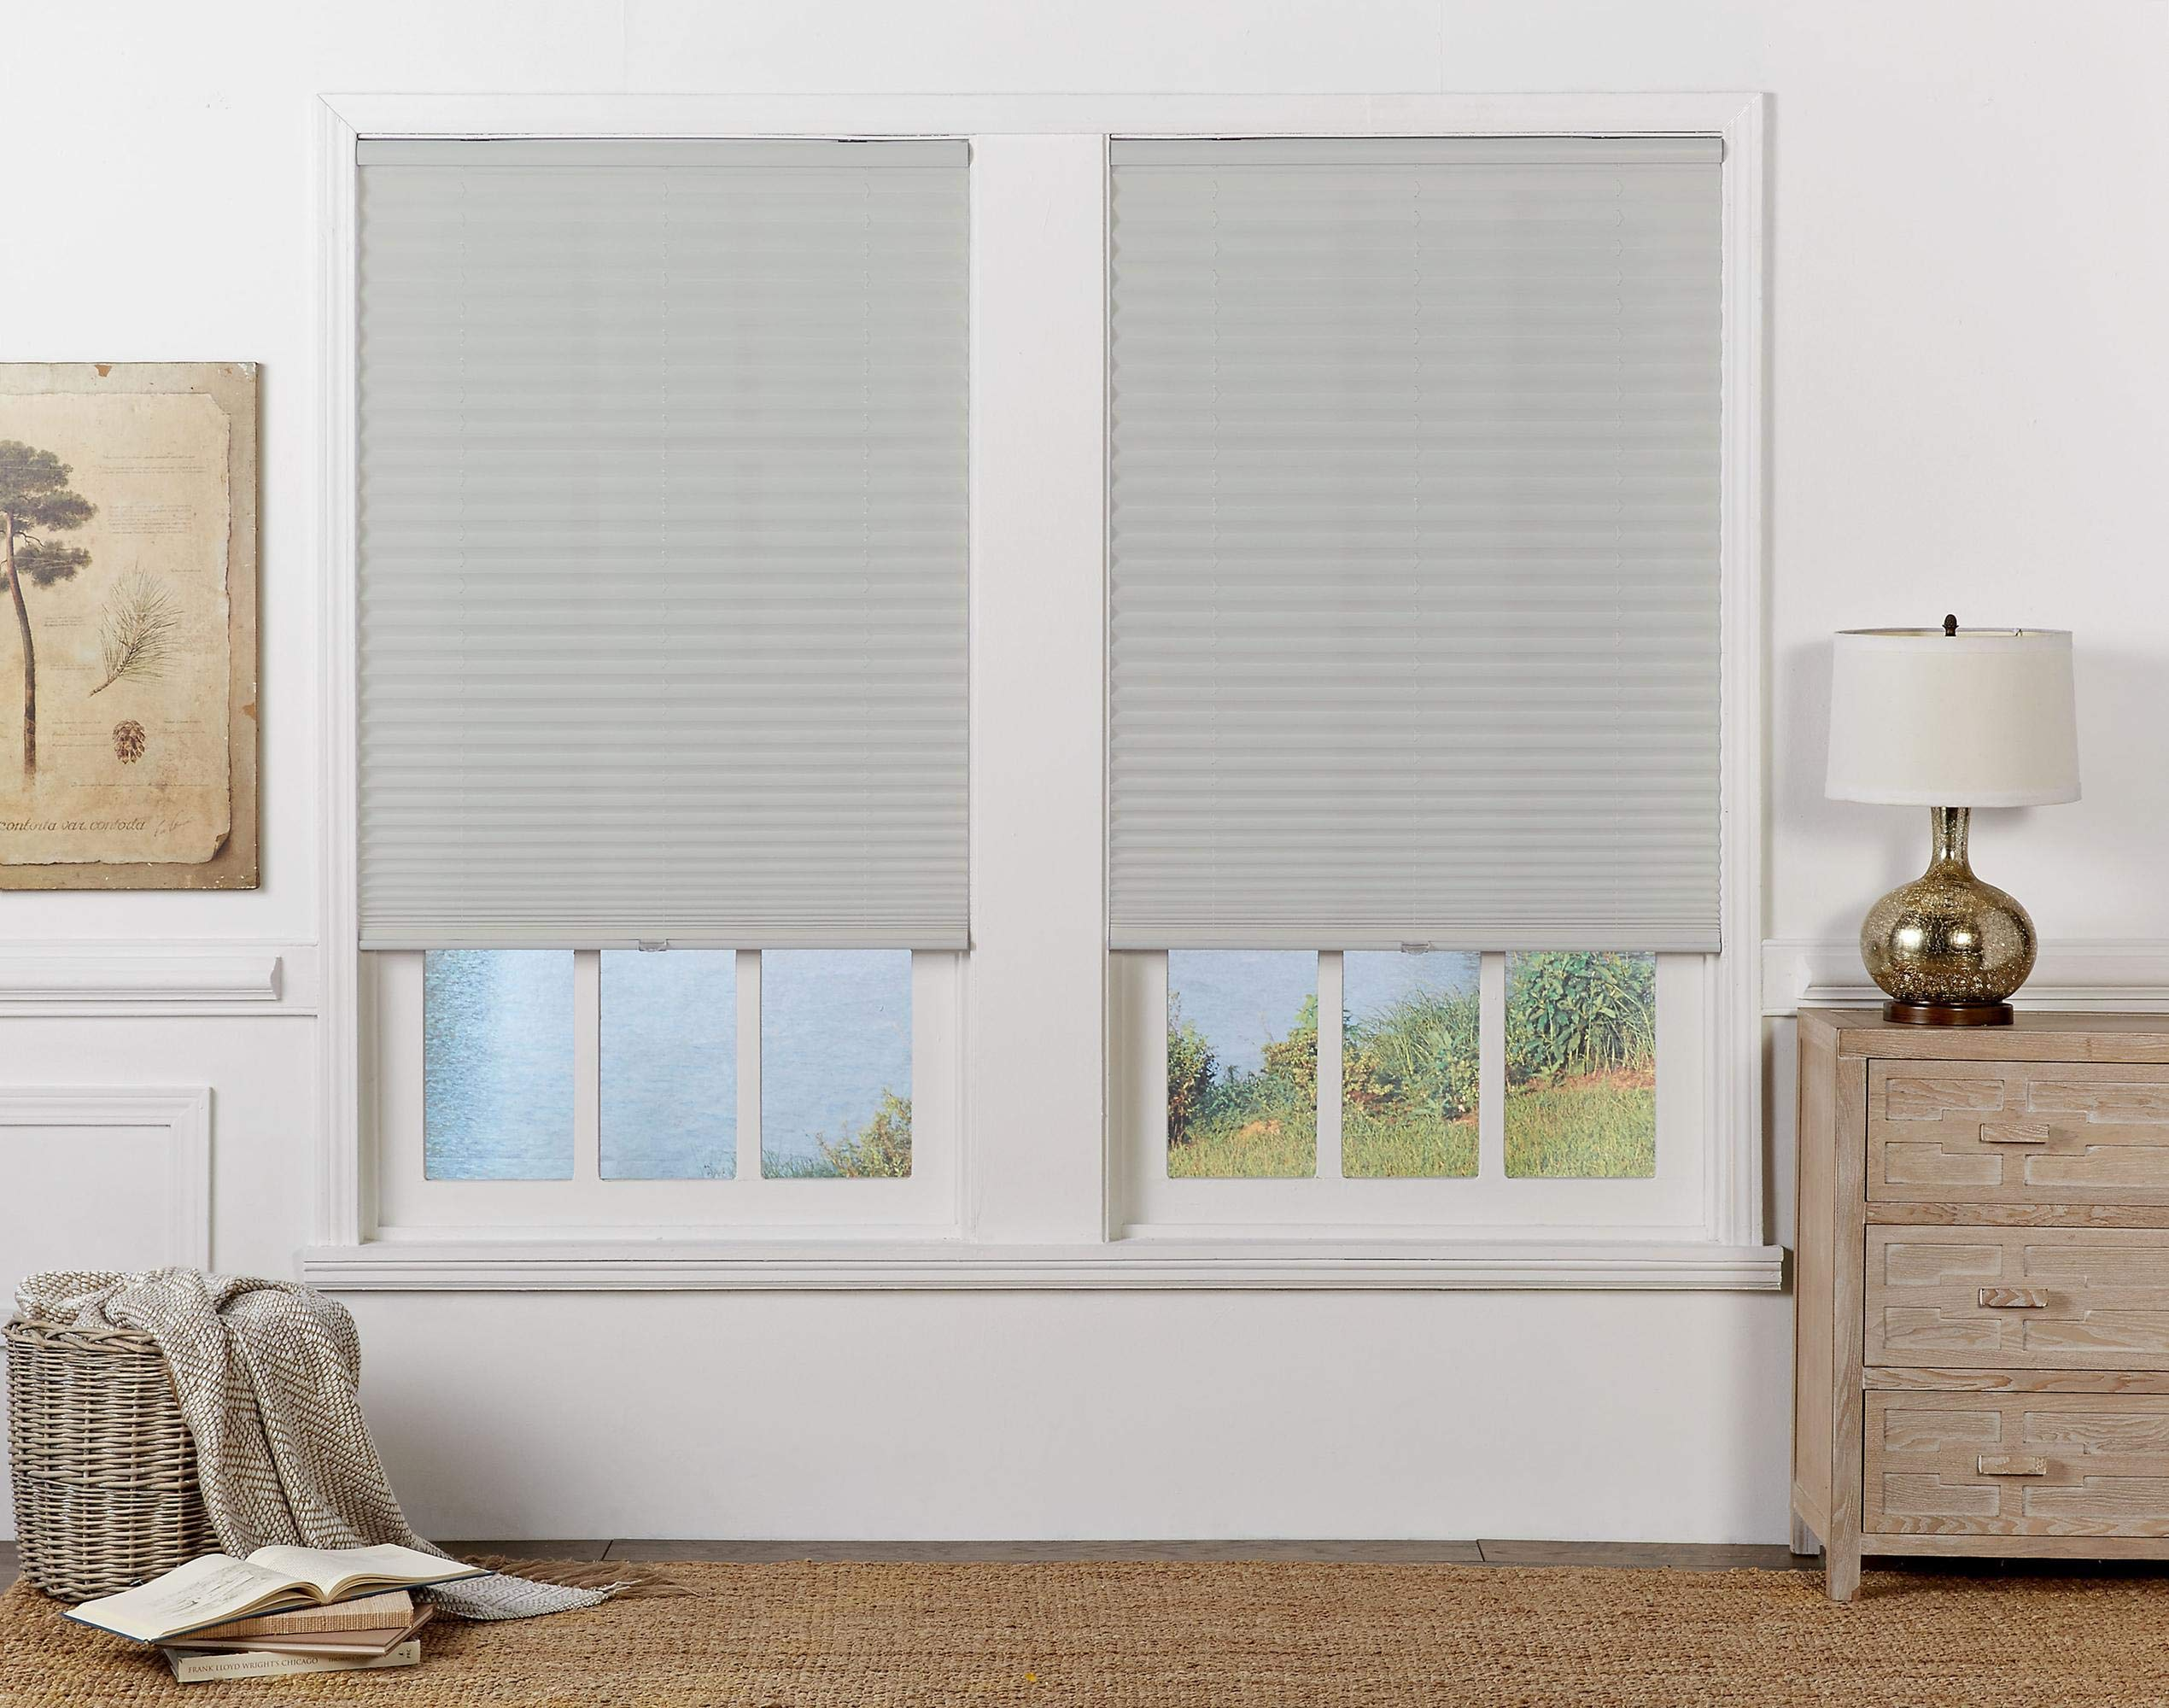 DEZ Furnishings QDLG700720 Cordless Light Filtering Pleated Shade 70W x 72L Inches Silver Gray by DEZ Furnishings (Image #1)